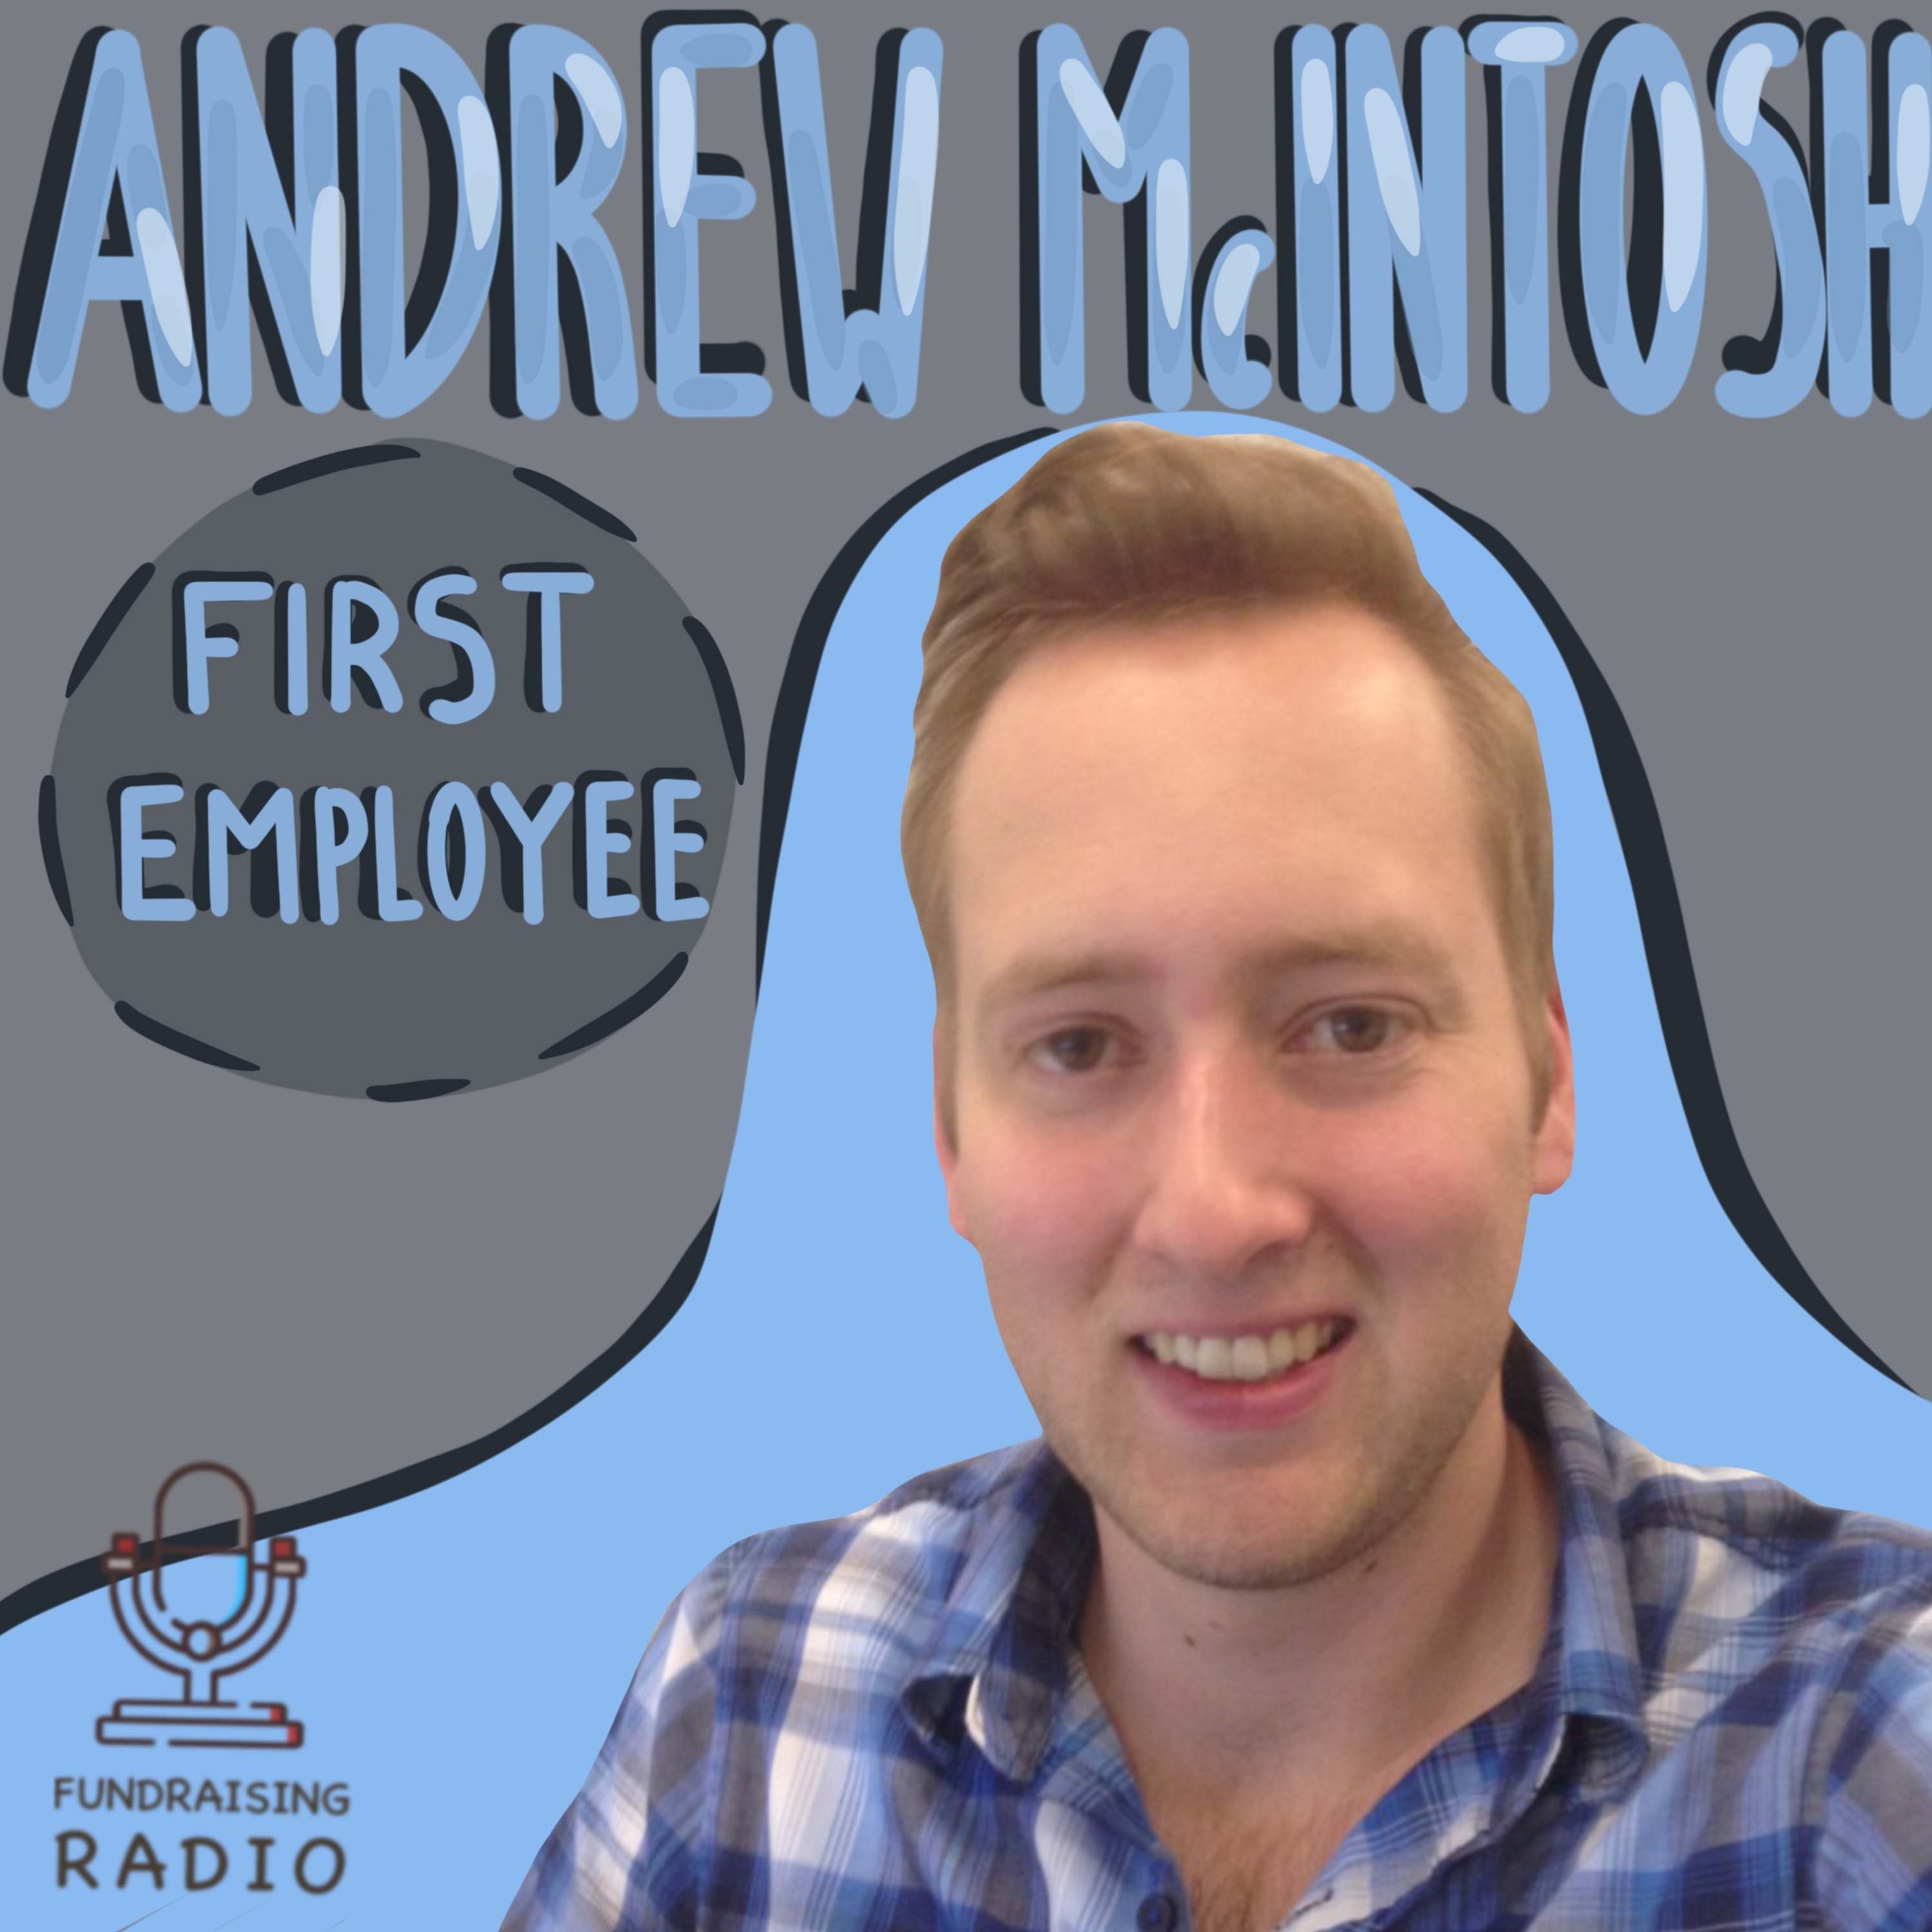 First employees in successful companies - how to build that dream team? By Andrew McIntosh